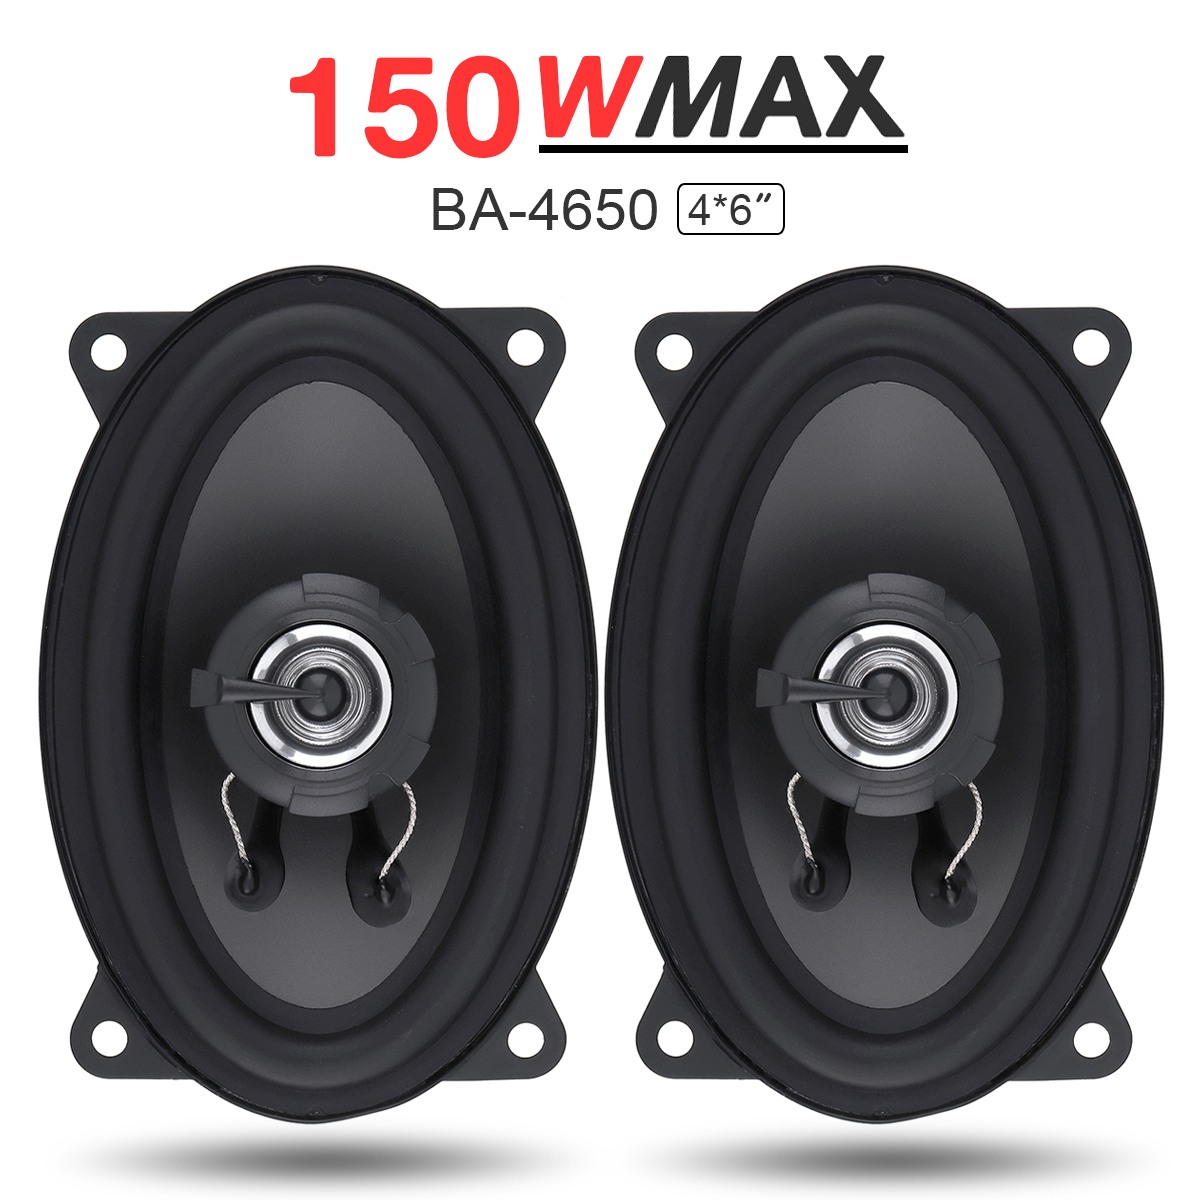 2pcs 4*6 Inch <font><b>2</b></font> Way 150W Car Speaker Automobile Car HiFi Audio Full Range Frequency Coaxial Speaker High Pitch Car Loudspeaker image